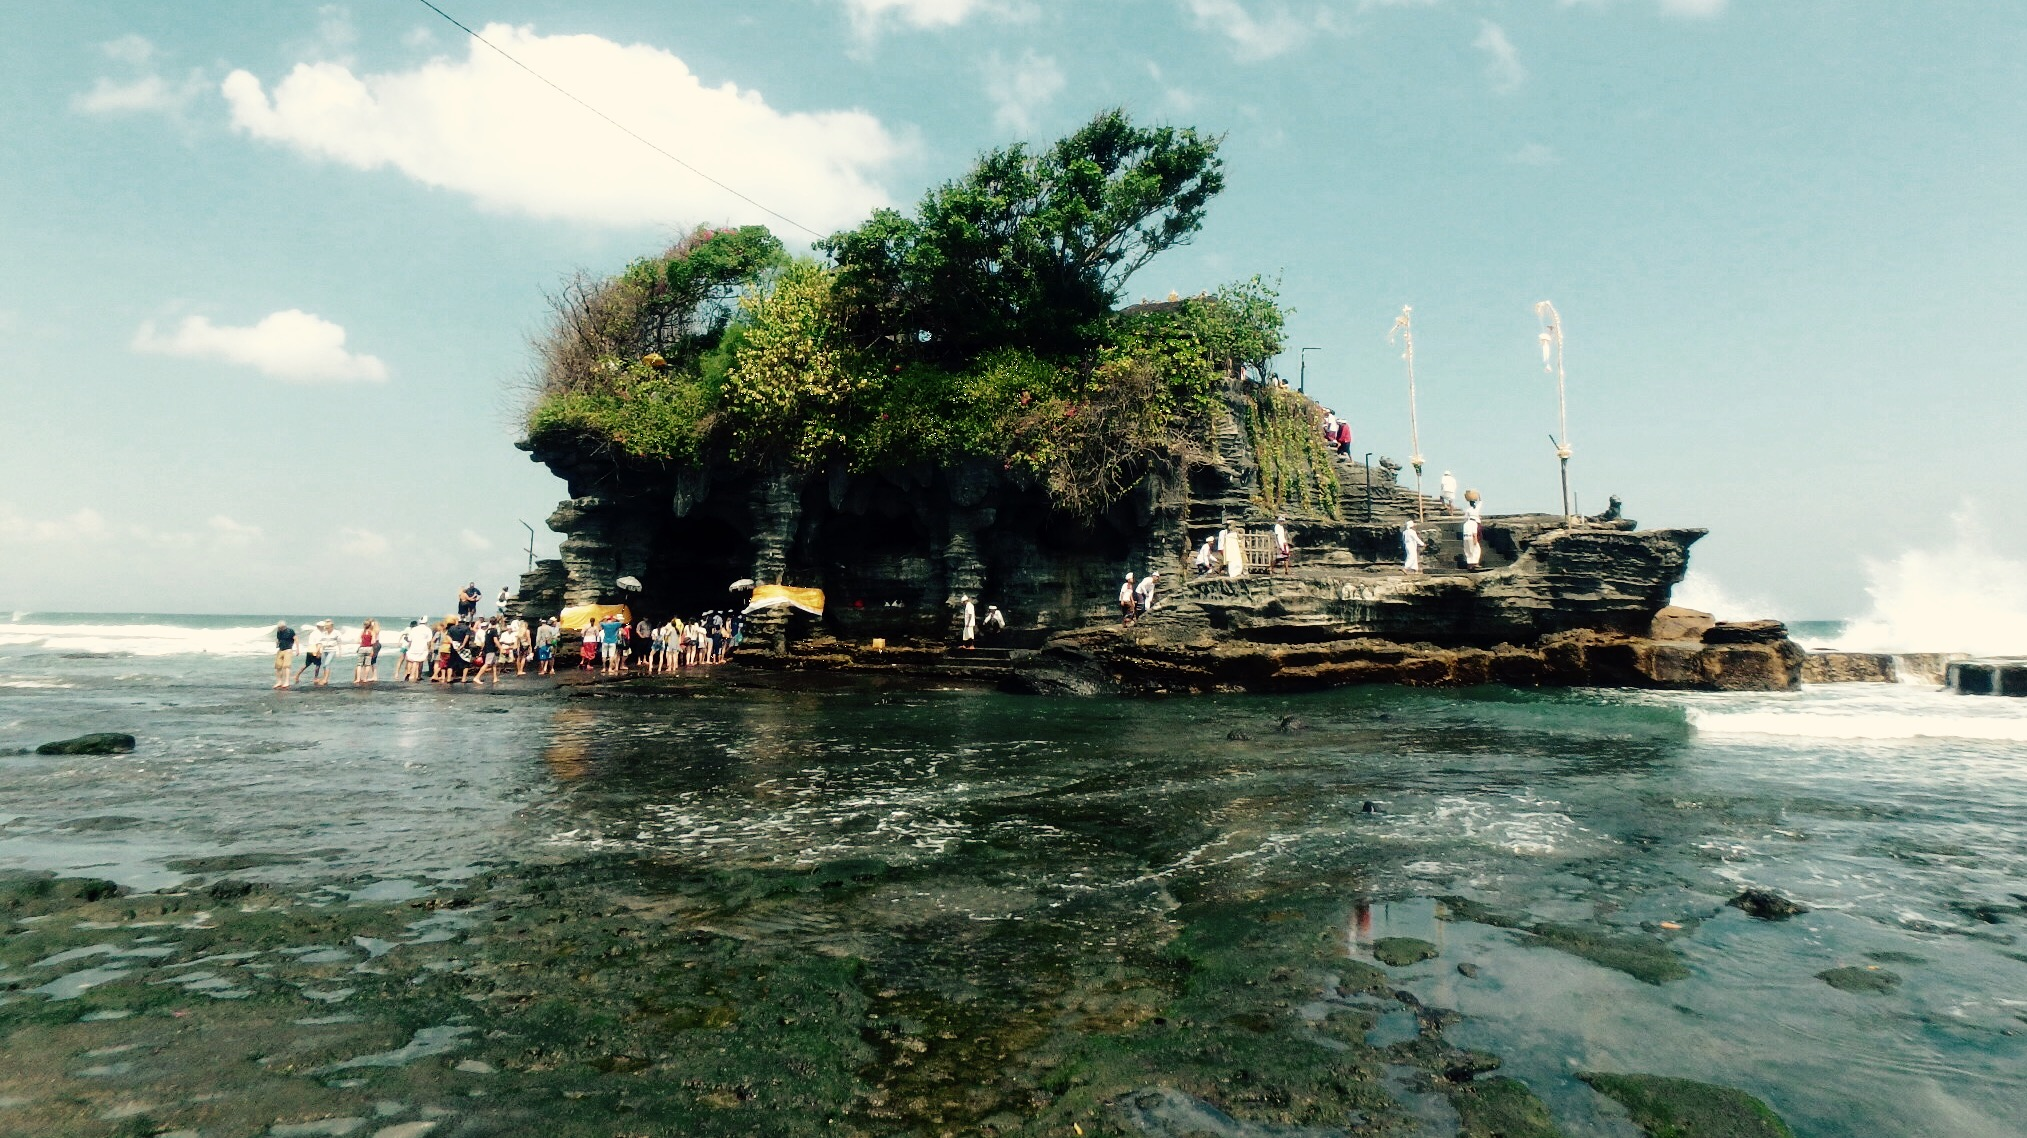 Pura Tanah Lot, a revered and popular sea temple on Bali's coast.